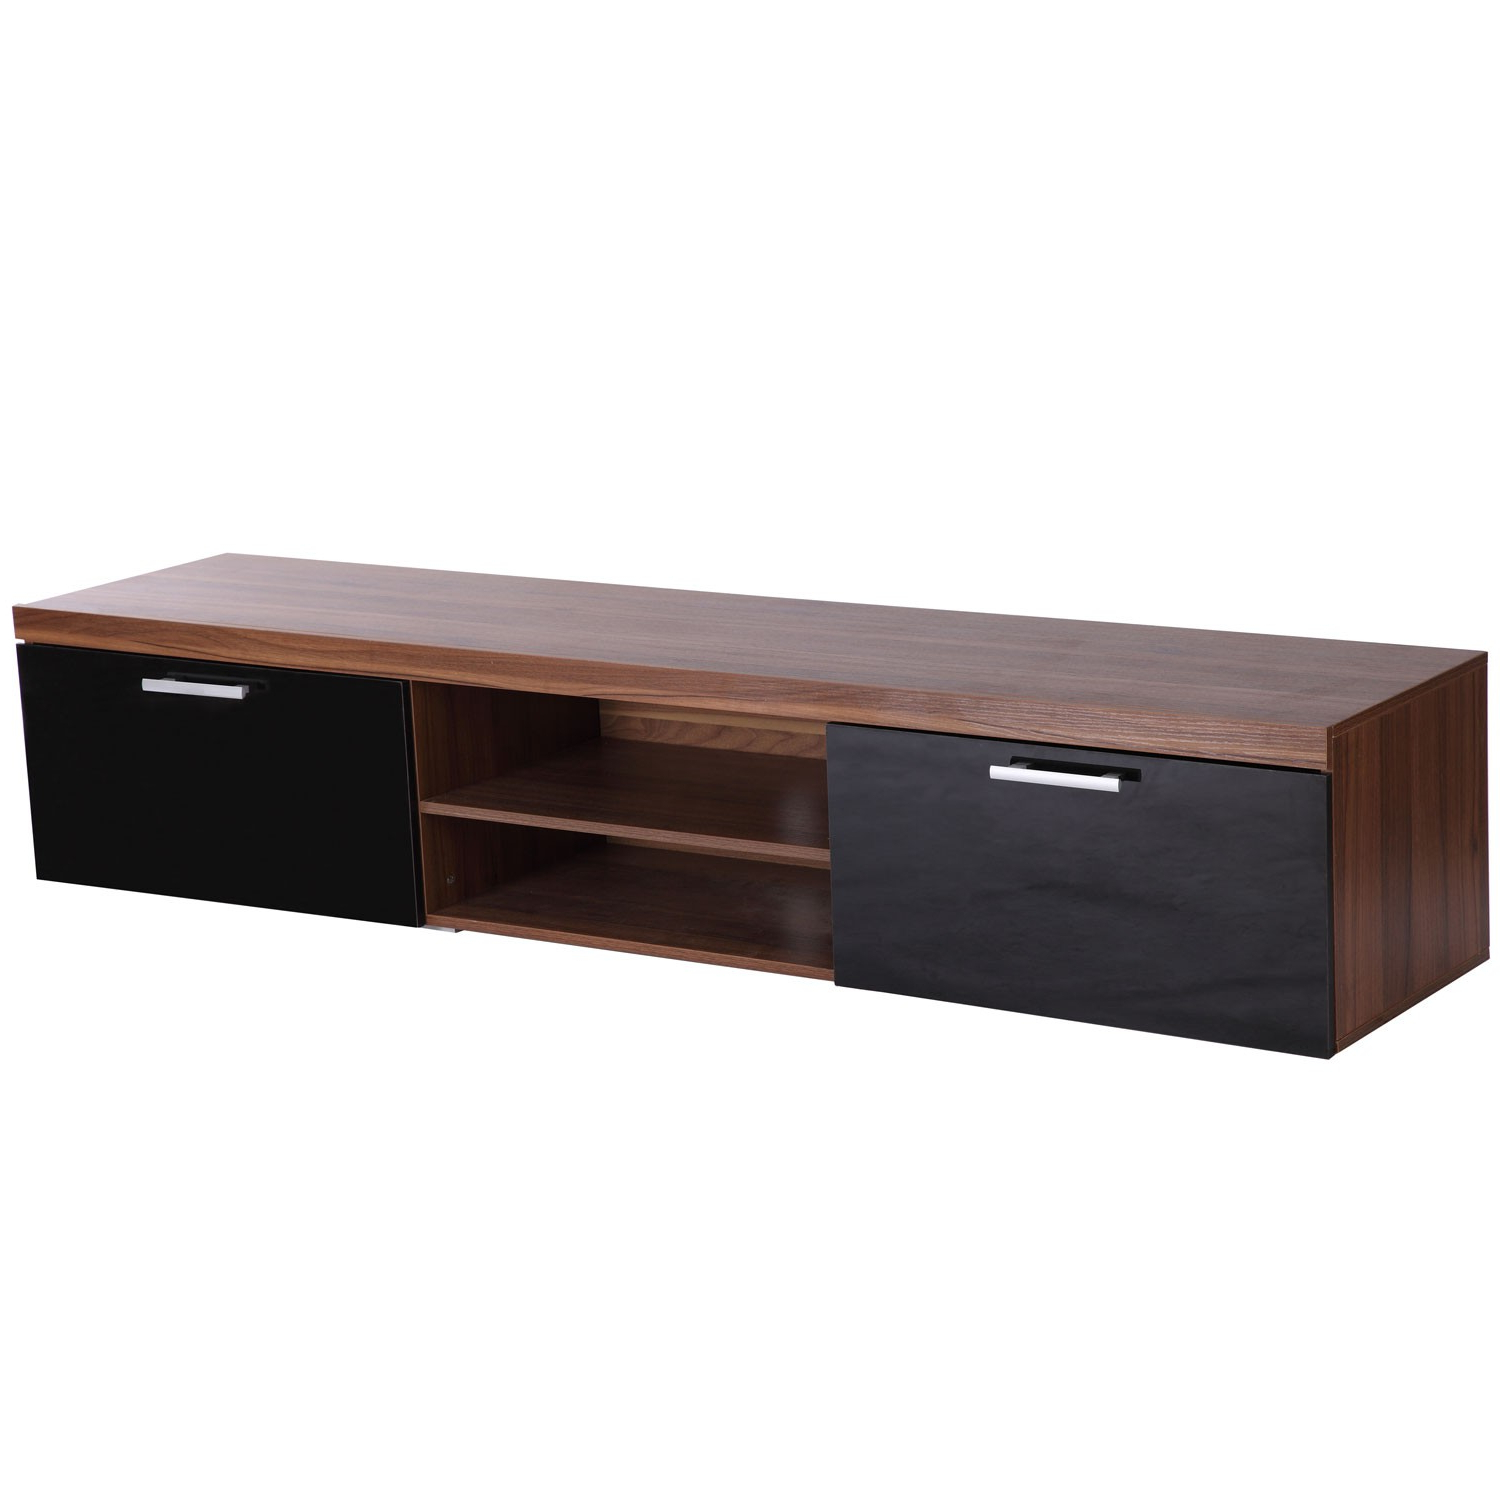 Homcom Tv Cabinet Unit, 2 High Gloss Doors Black/walnut Within Well Liked Walnut Tv Cabinets With Doors (Gallery 2 of 20)